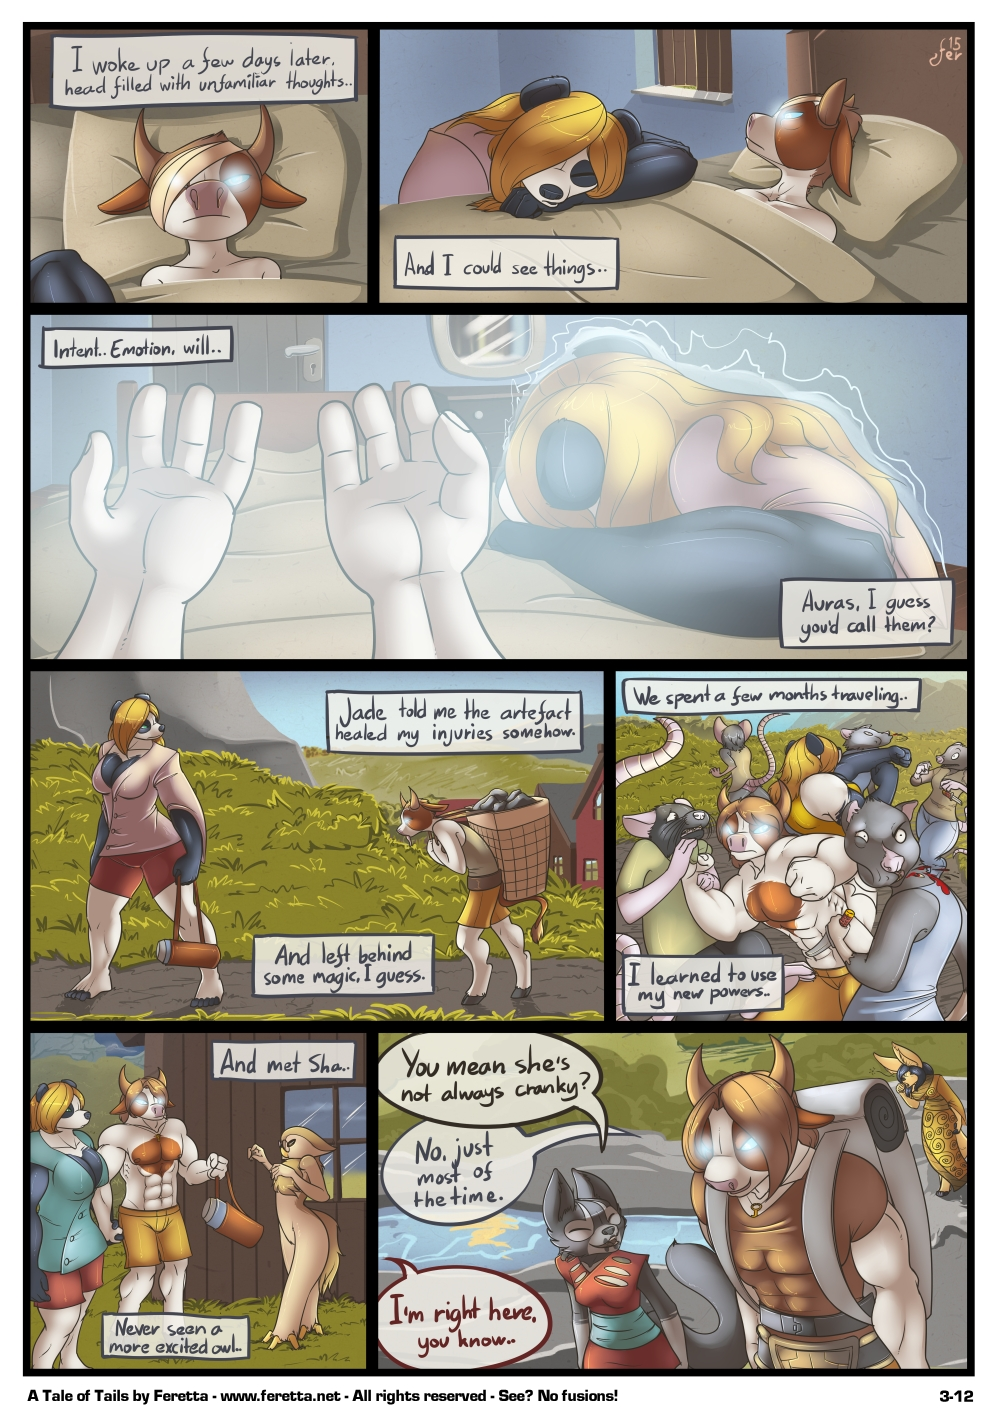 A Tale of Tails, 3-12